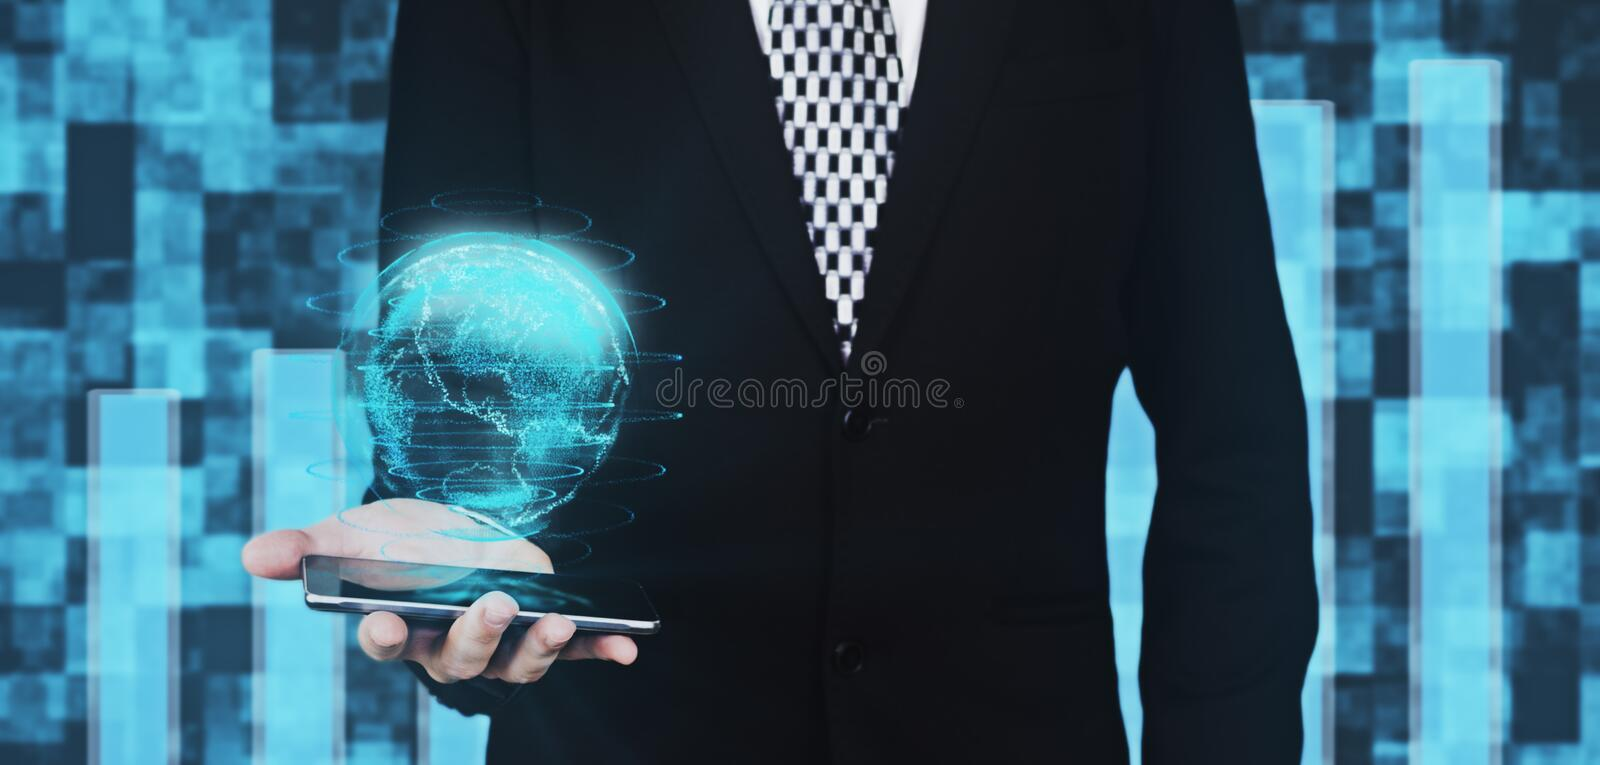 Businessman in Black Suit Holding Smartphone in Hand While Projecting Digital Globe Hud Interface Against Futuristic Background 3D stock illustration